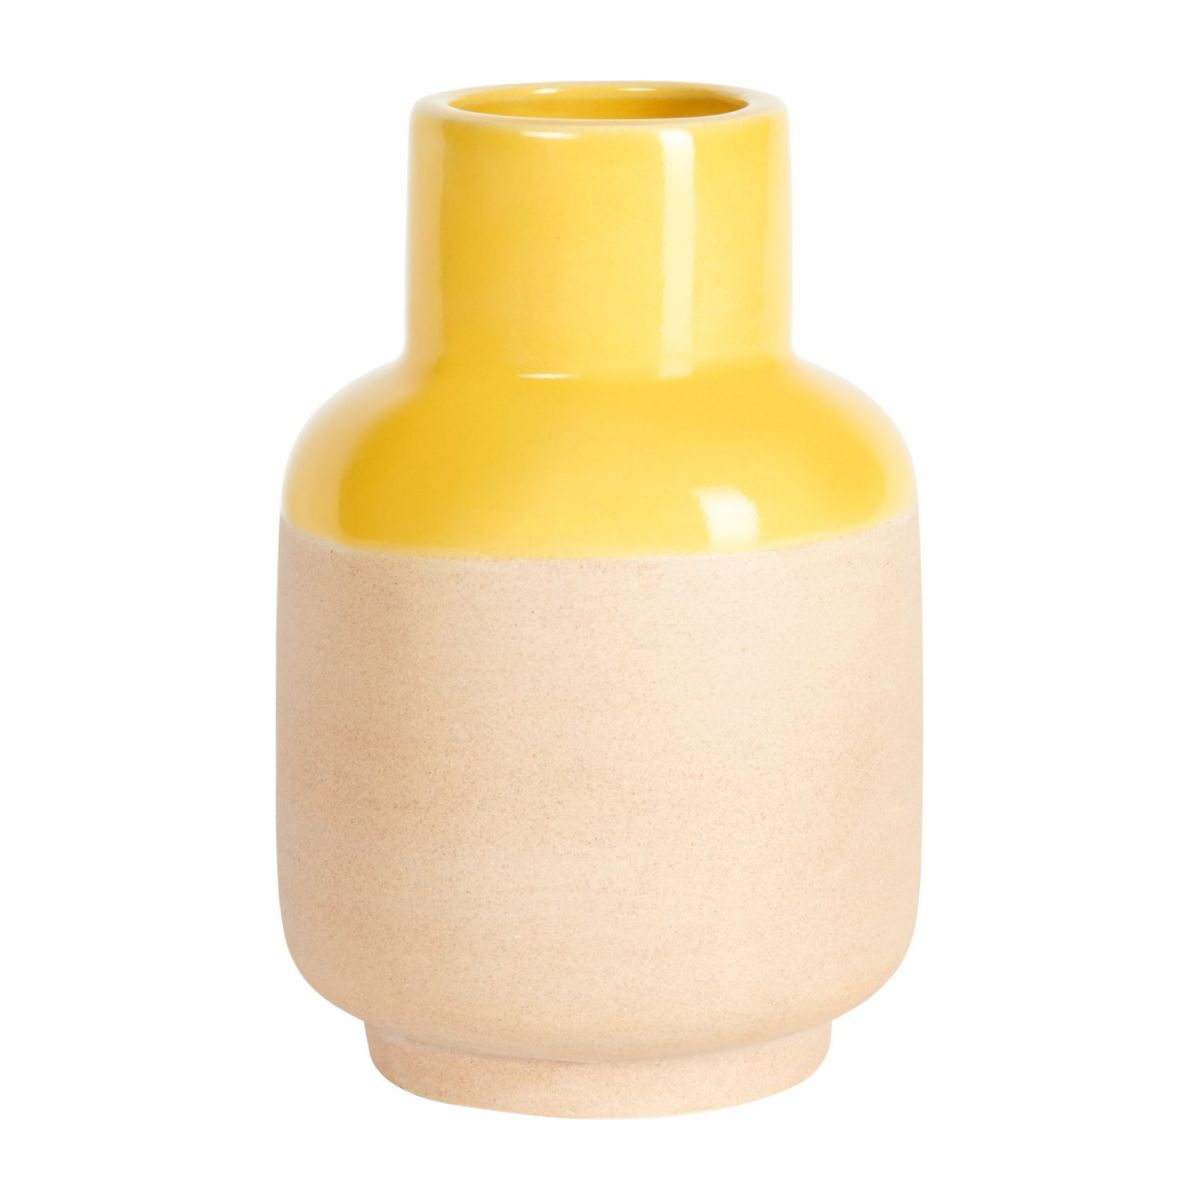 Vase made of earthenware 14cm, yellow n°1